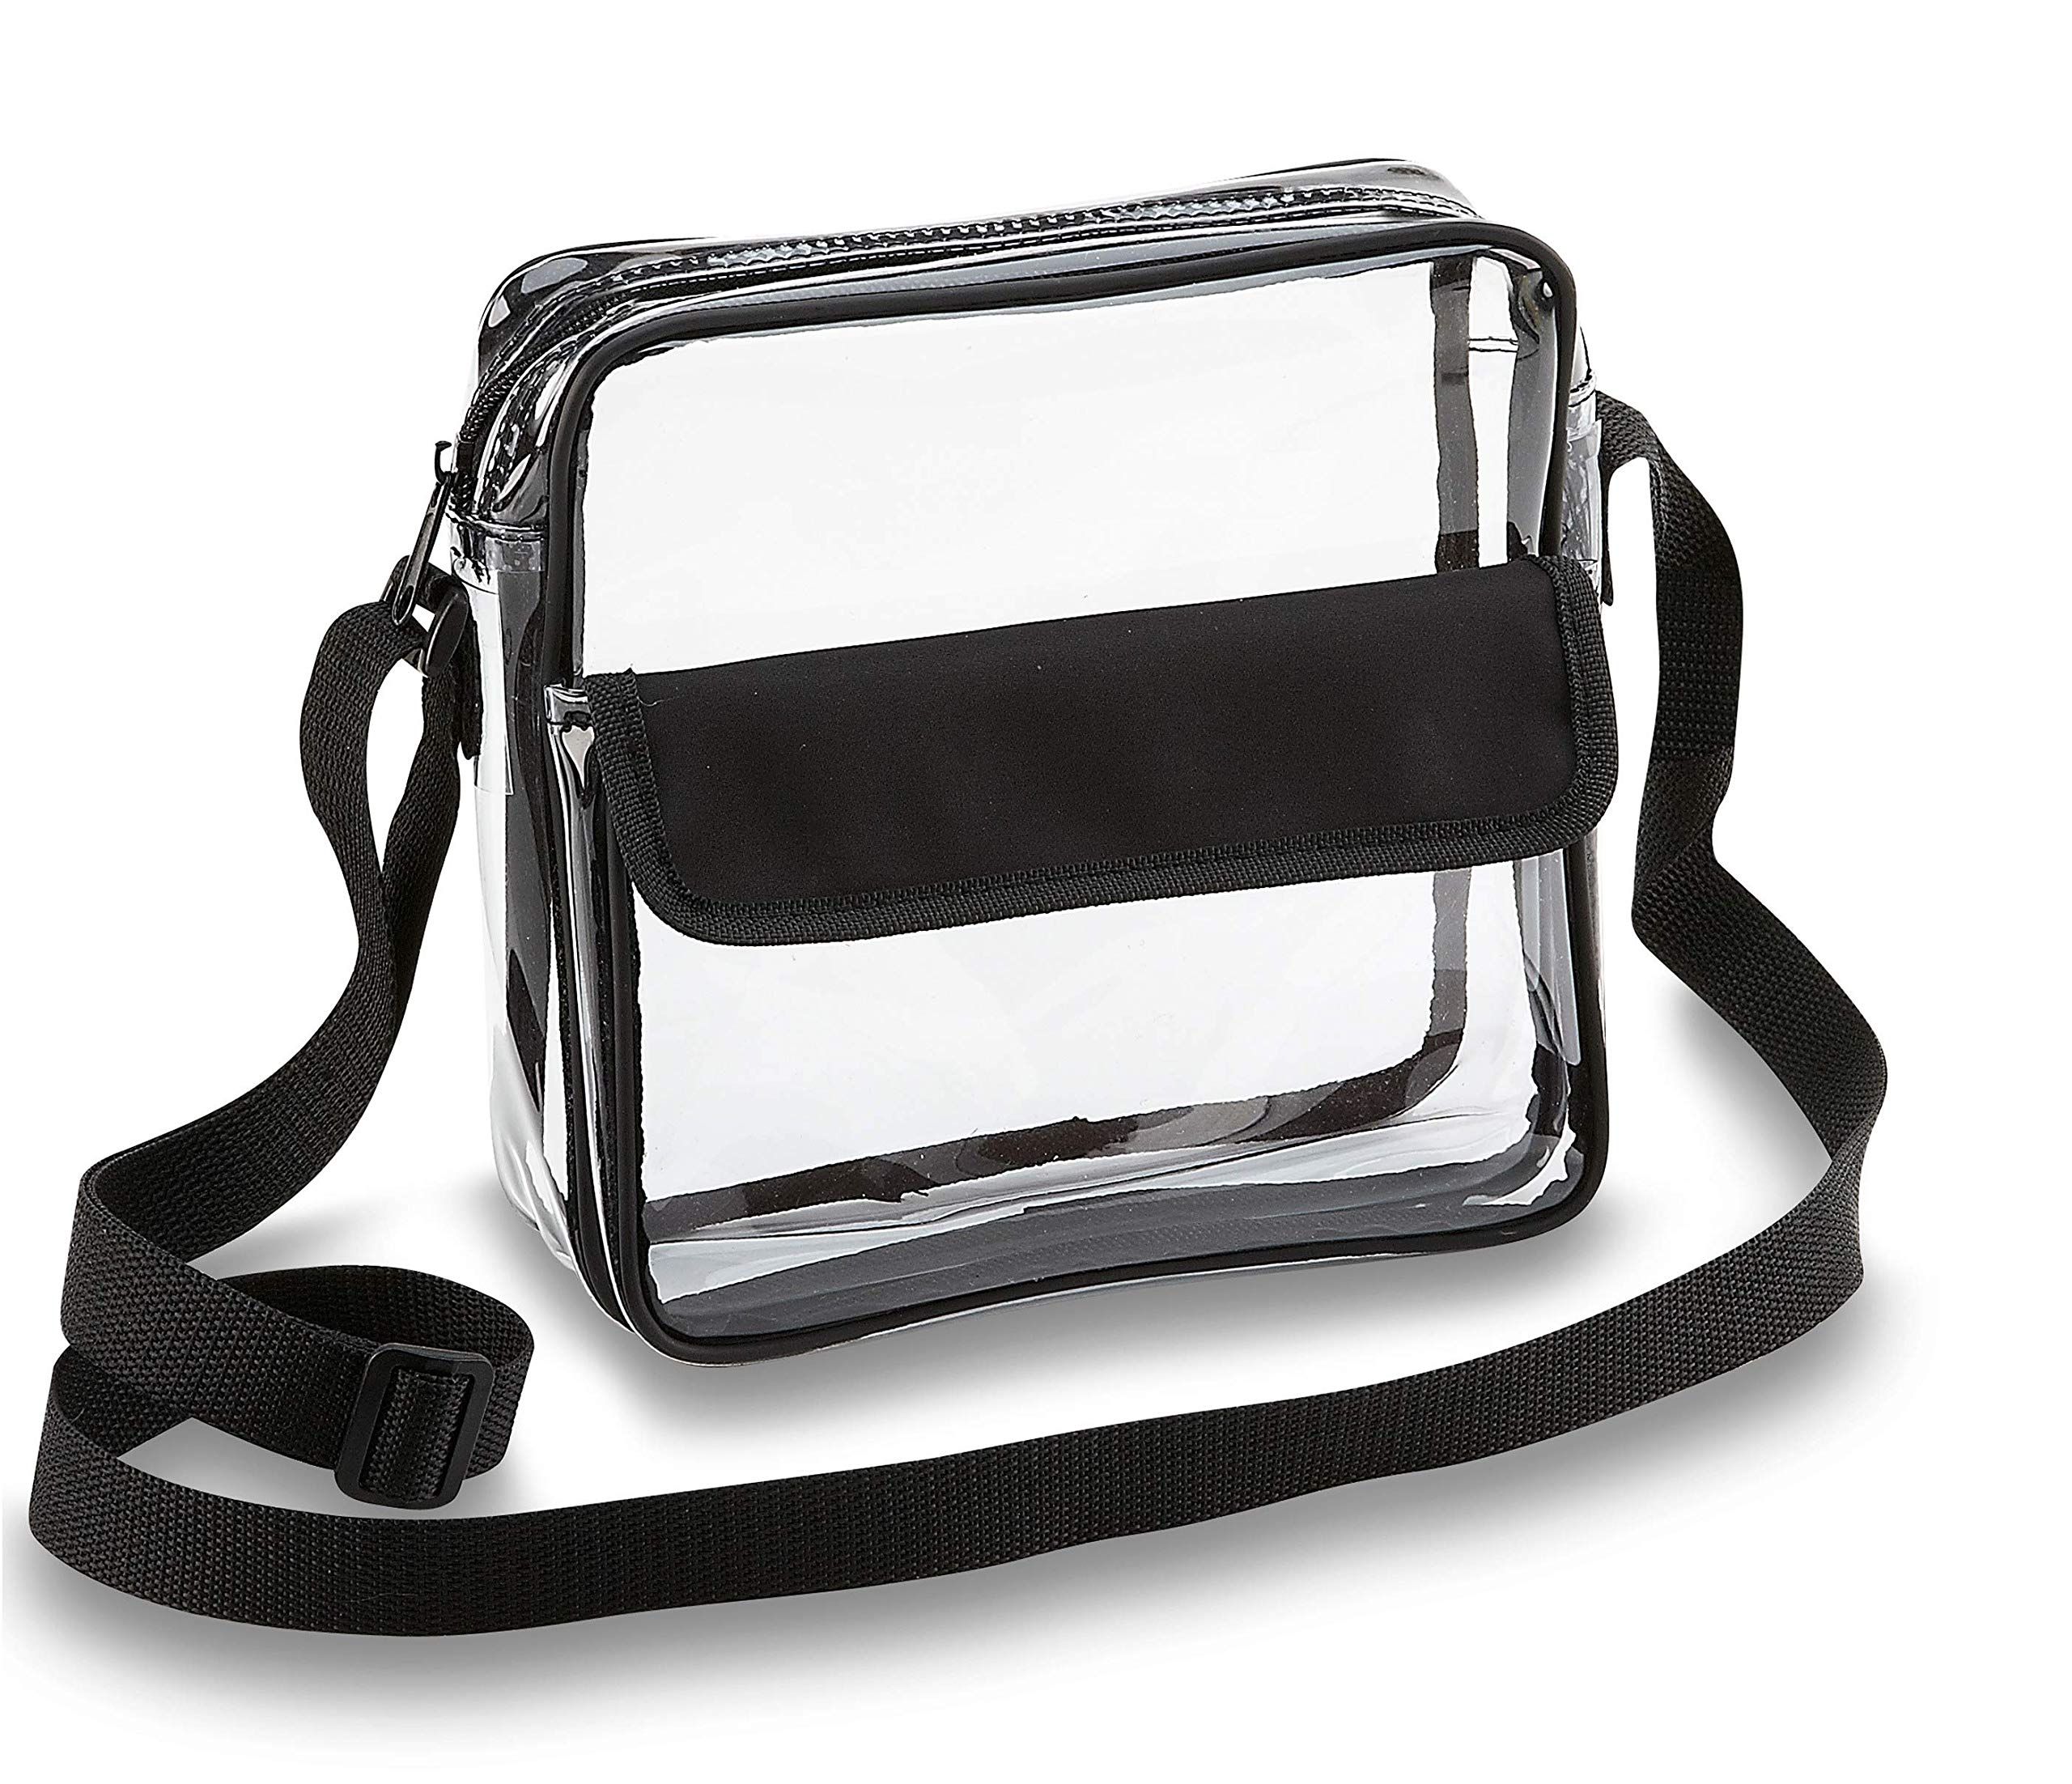 Clear Crossbody Messenger Shoulder Bag with Adjustable Strap NFL Stadium Approved Transparent Purse (Black) by Clear Handbags & More